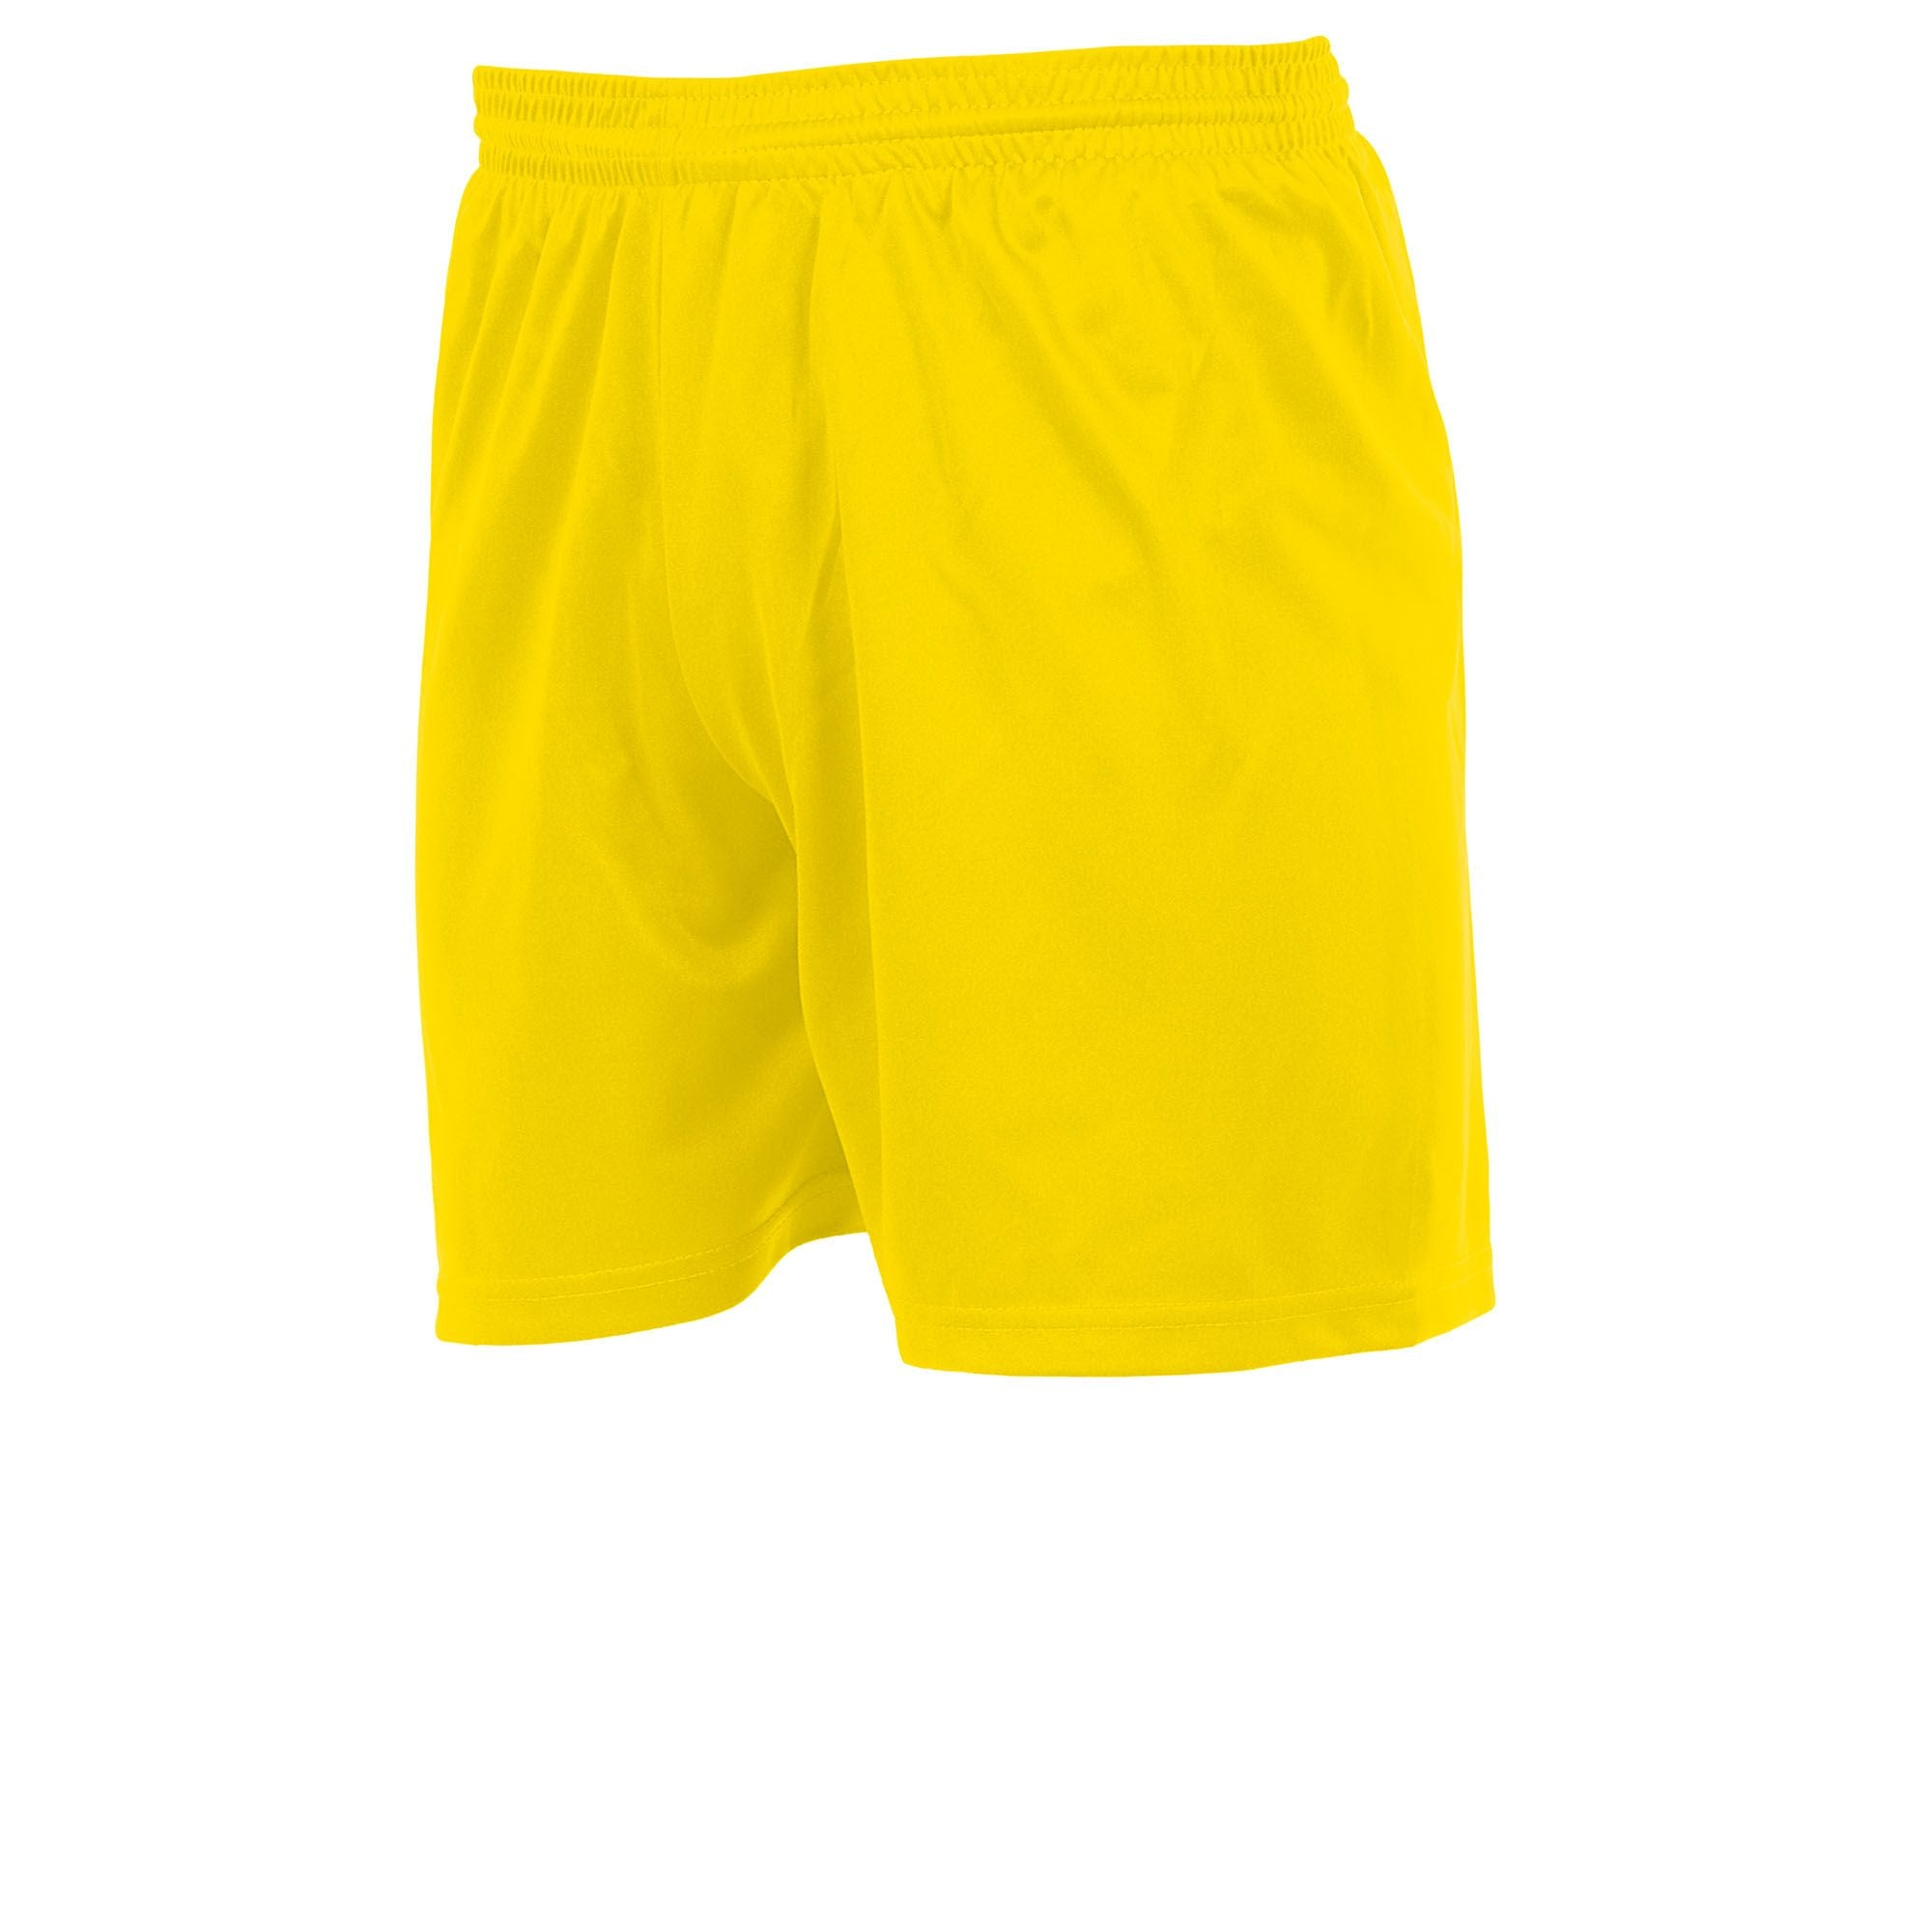 Stanno Universal Shorts - Yellow